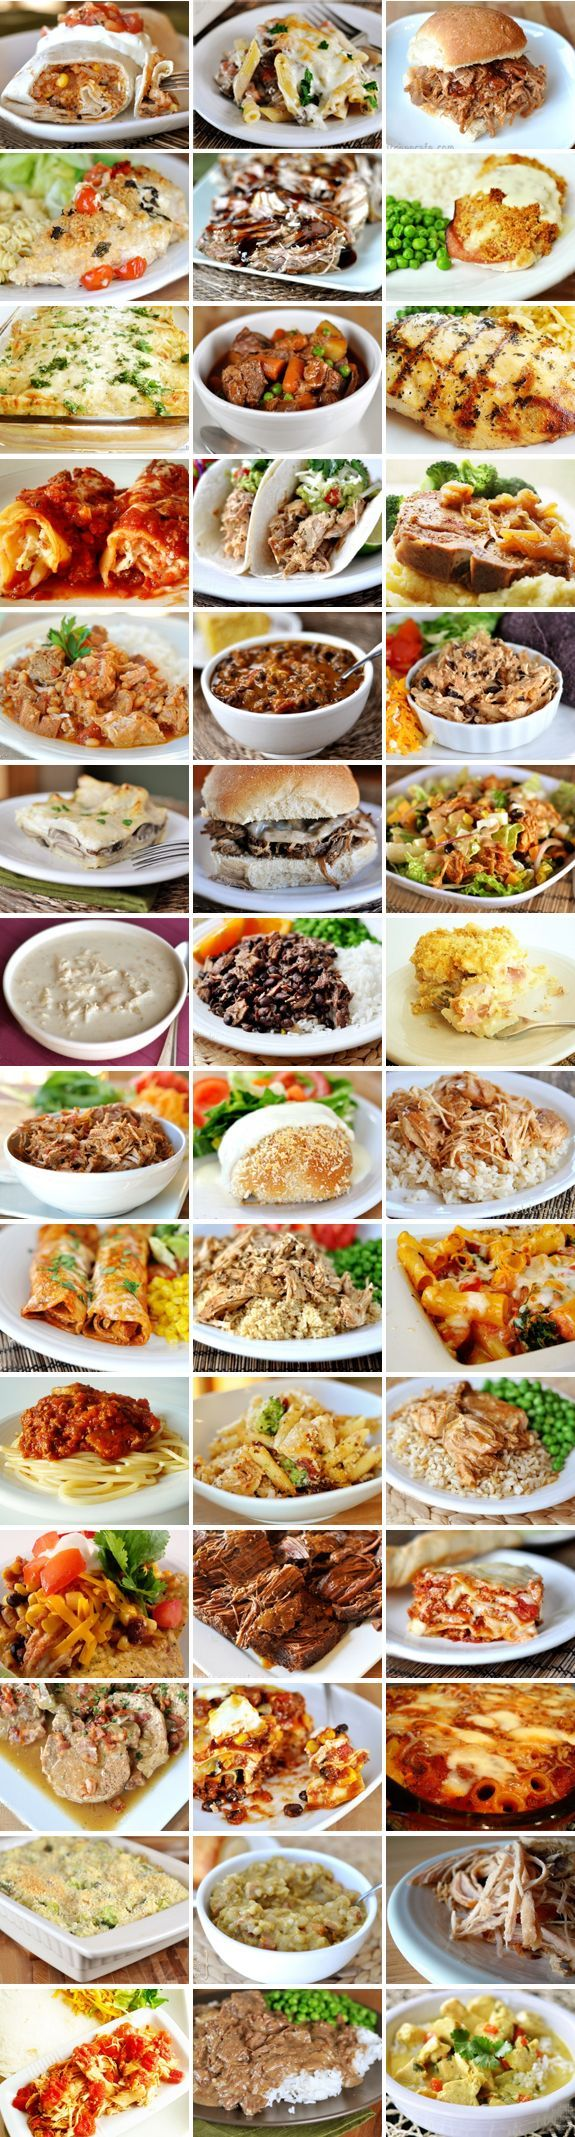 """40+ make ahead meals @ Mel's Kitchen Cafe---  """"All of these meals can be made ahead in some form or another – some are slow cooker meals, some can successfully be frozen and baked later, some can be assembled the night before or morning of and refrigerated until ready to bake."""""""